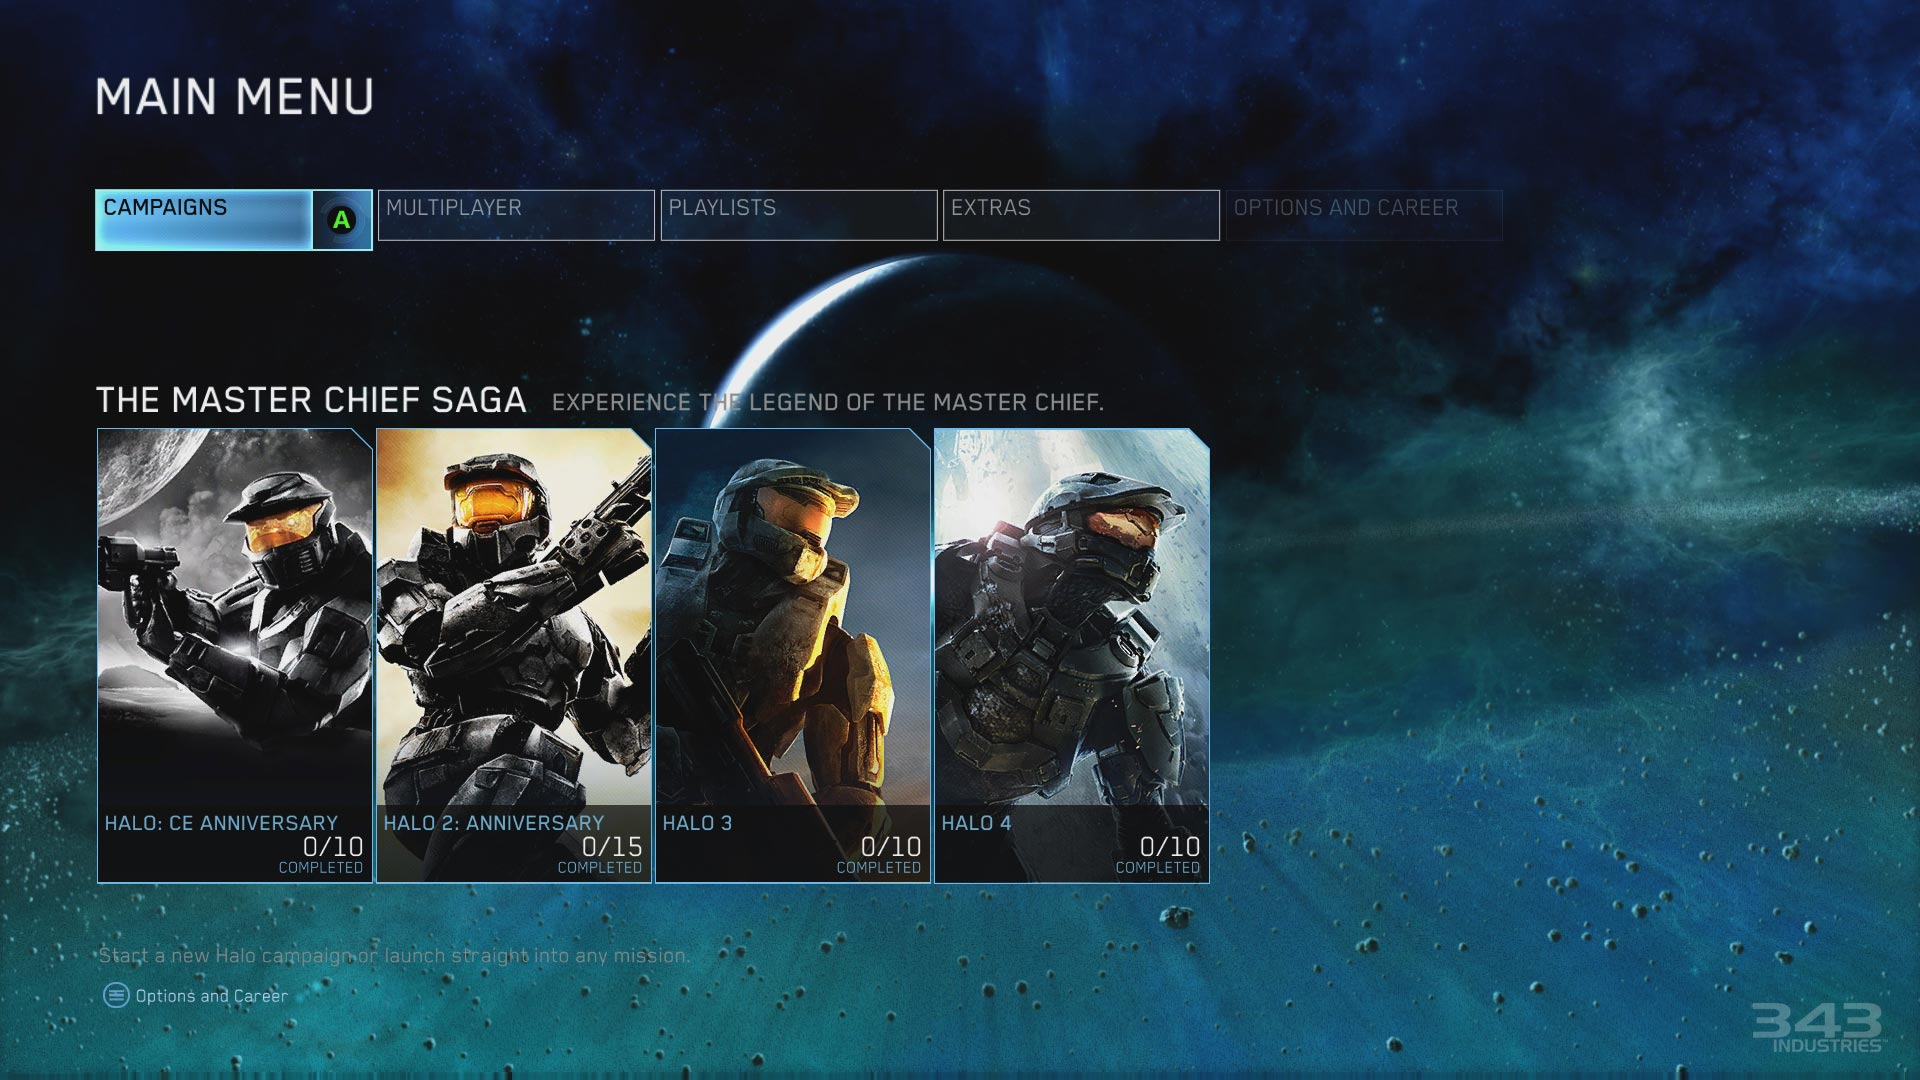 Players Halo Mcc Matchmaking Searching For would eminently salutary